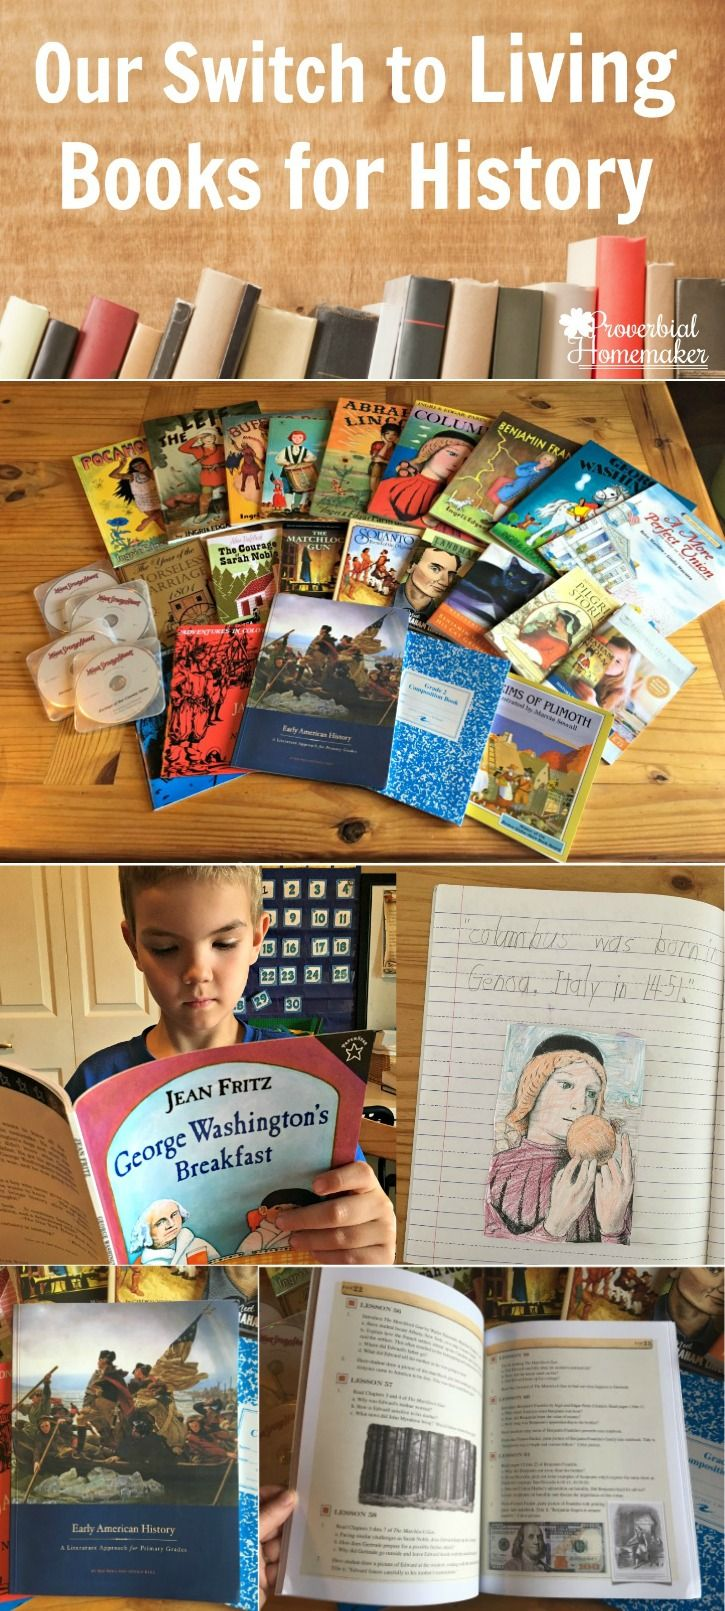 LOVE this way of teaching history! This homeschool mom shares how they switch their homeschool to using living books for history and the curriculum they use to do it - Beautiful Feet Books. Those books look amazing!